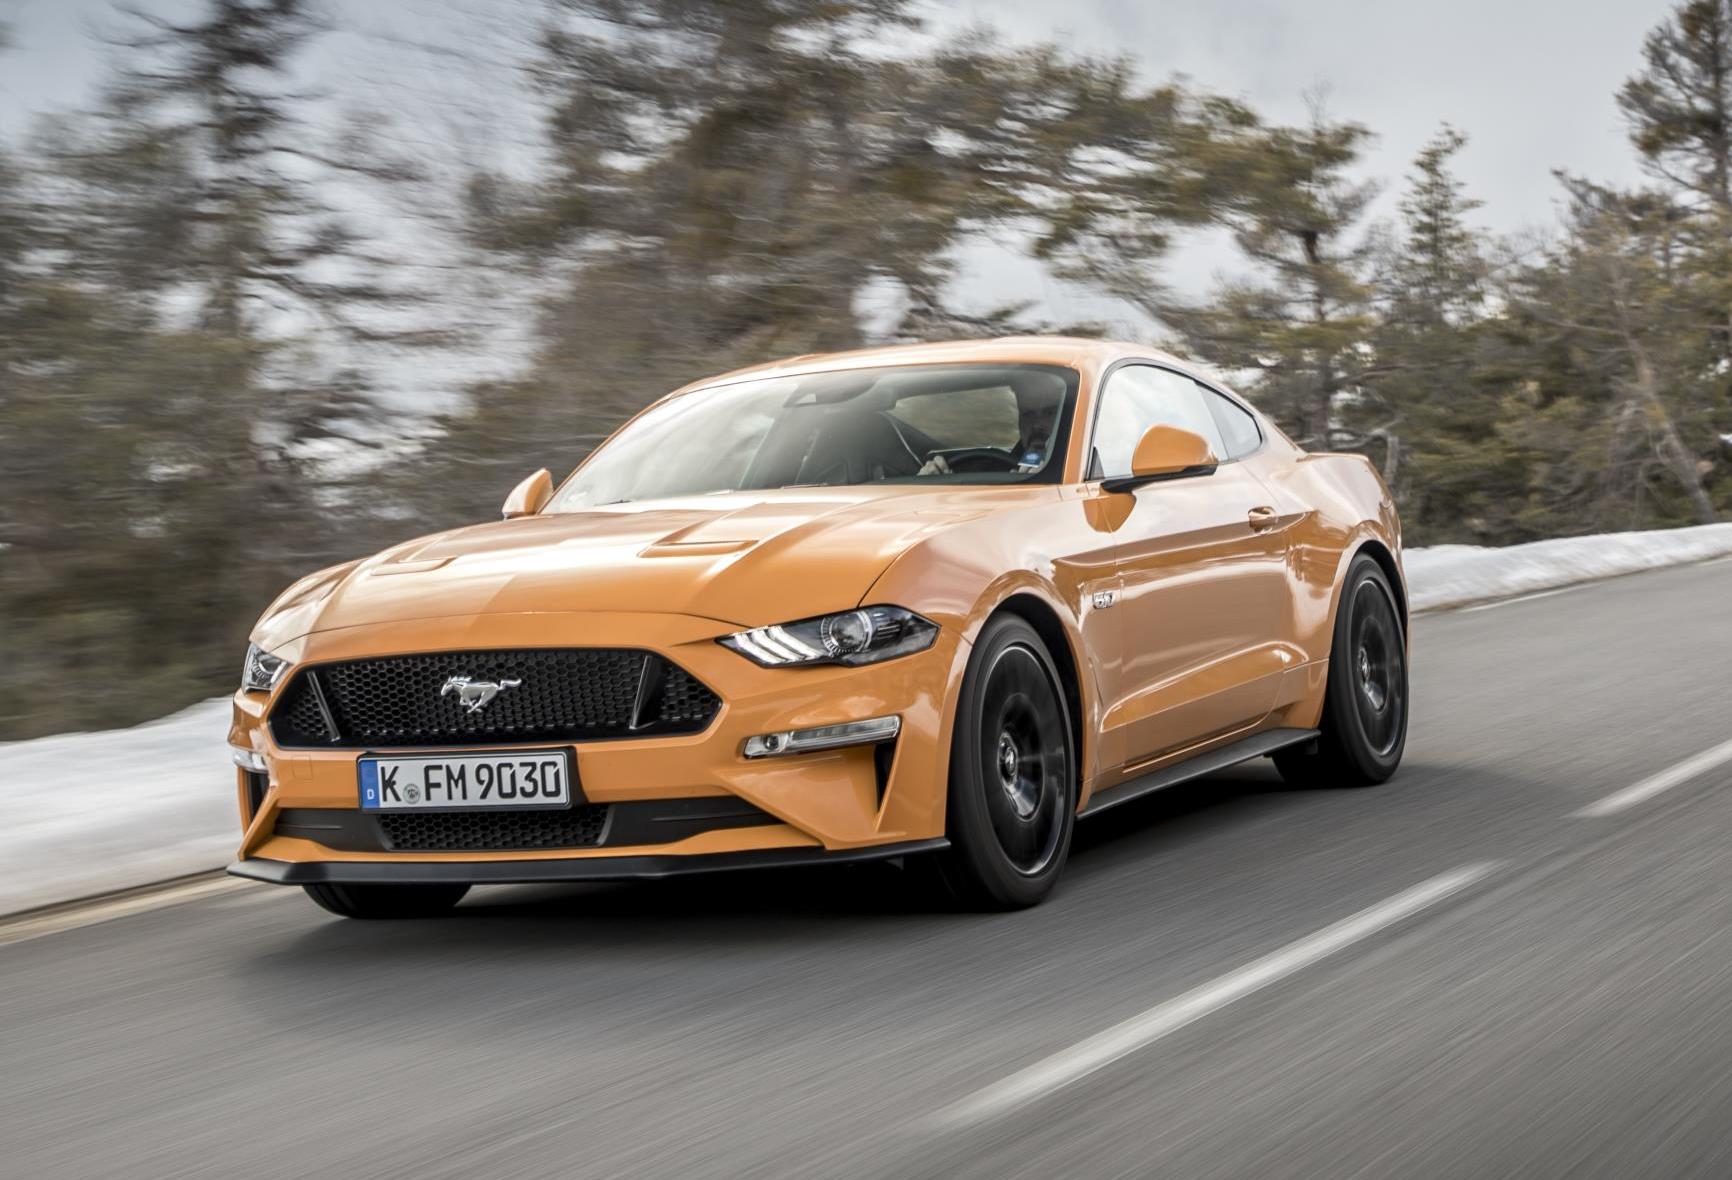 2017 ford mustang sales best selling sports car in the world again